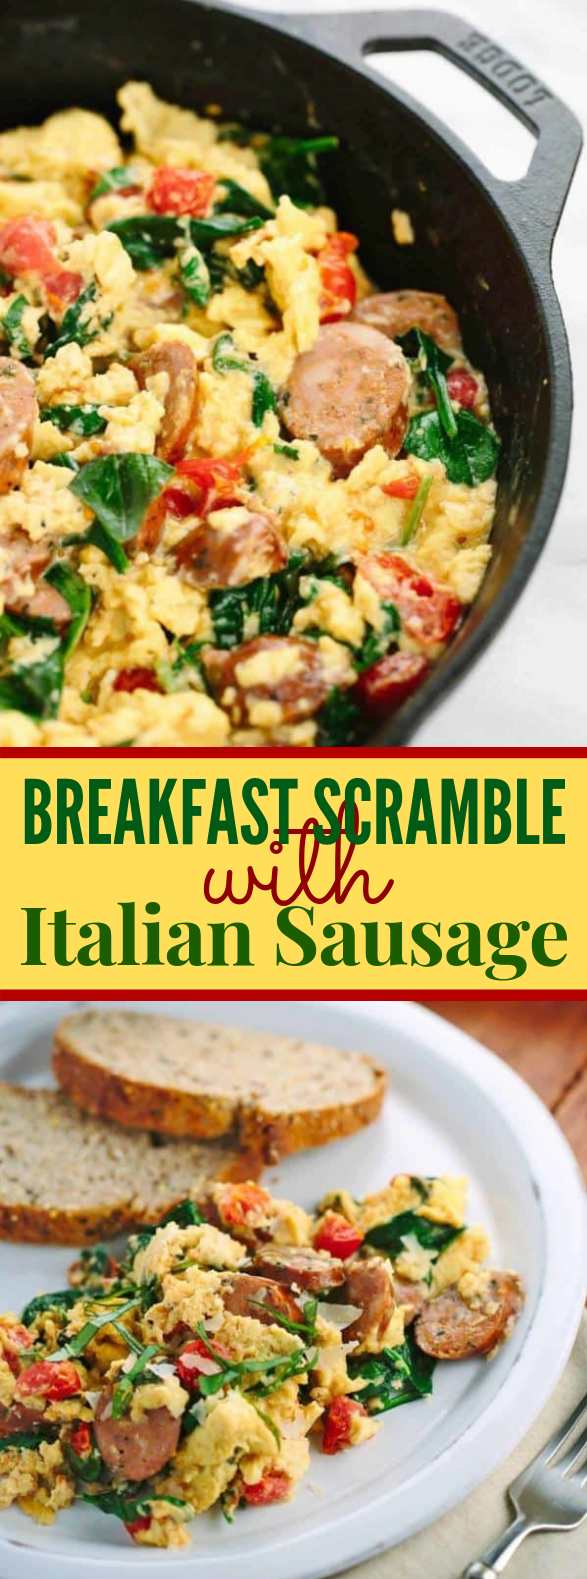 Breakfast Scramble with Italian Sausage #healthy #glutenfree